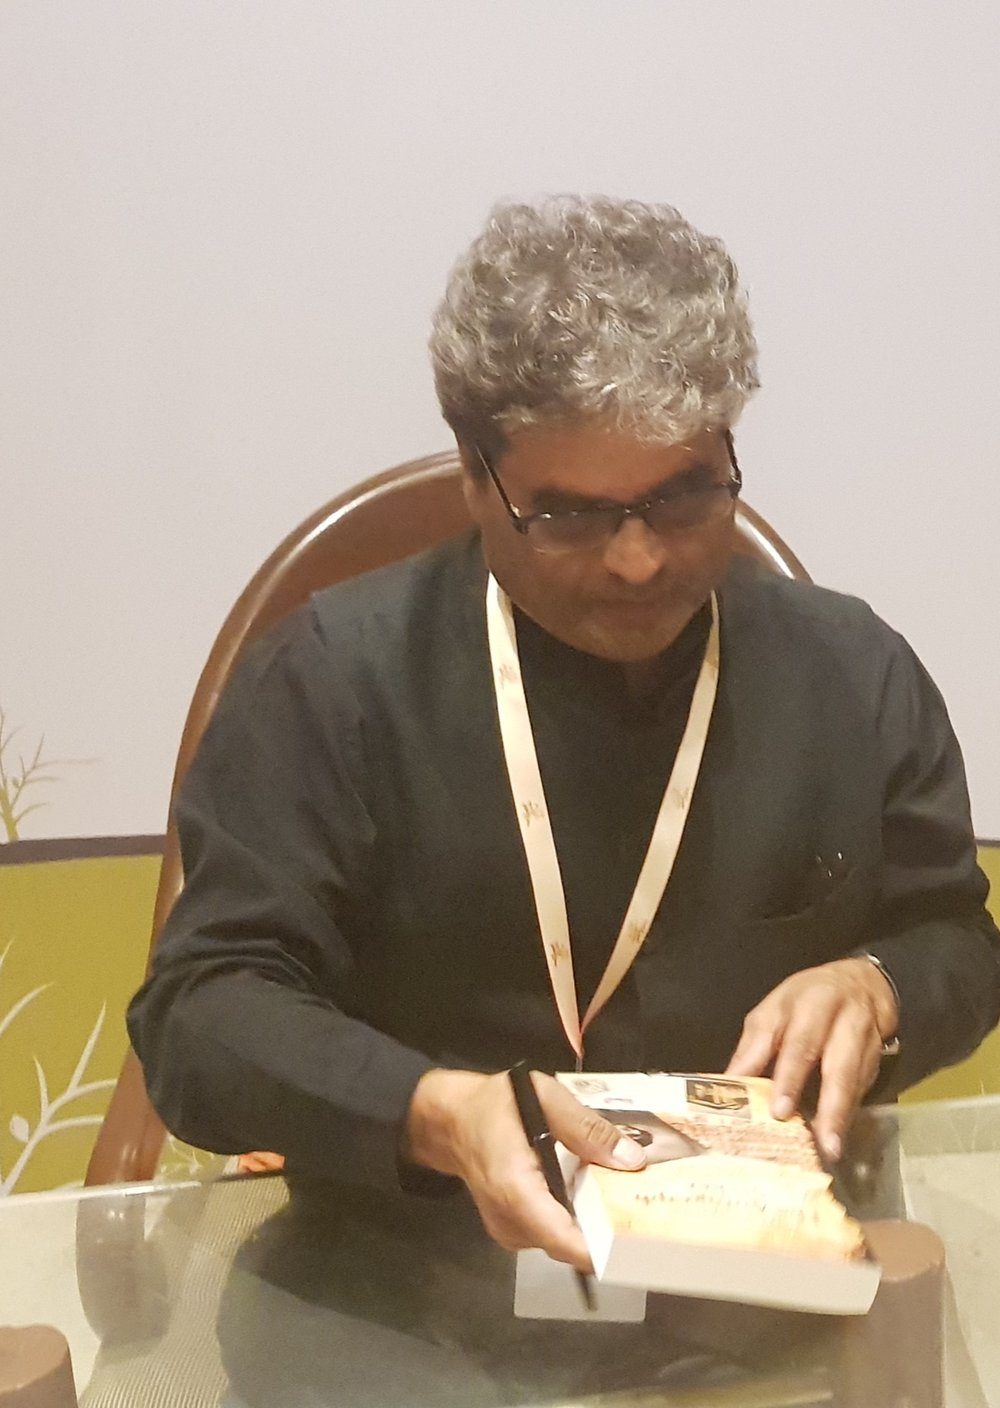 Vishal Bharadwaj, Indian Film maker and Music composer going through the novel that was long-listed for Word To Screen 2018, Mumbai Film Festival.